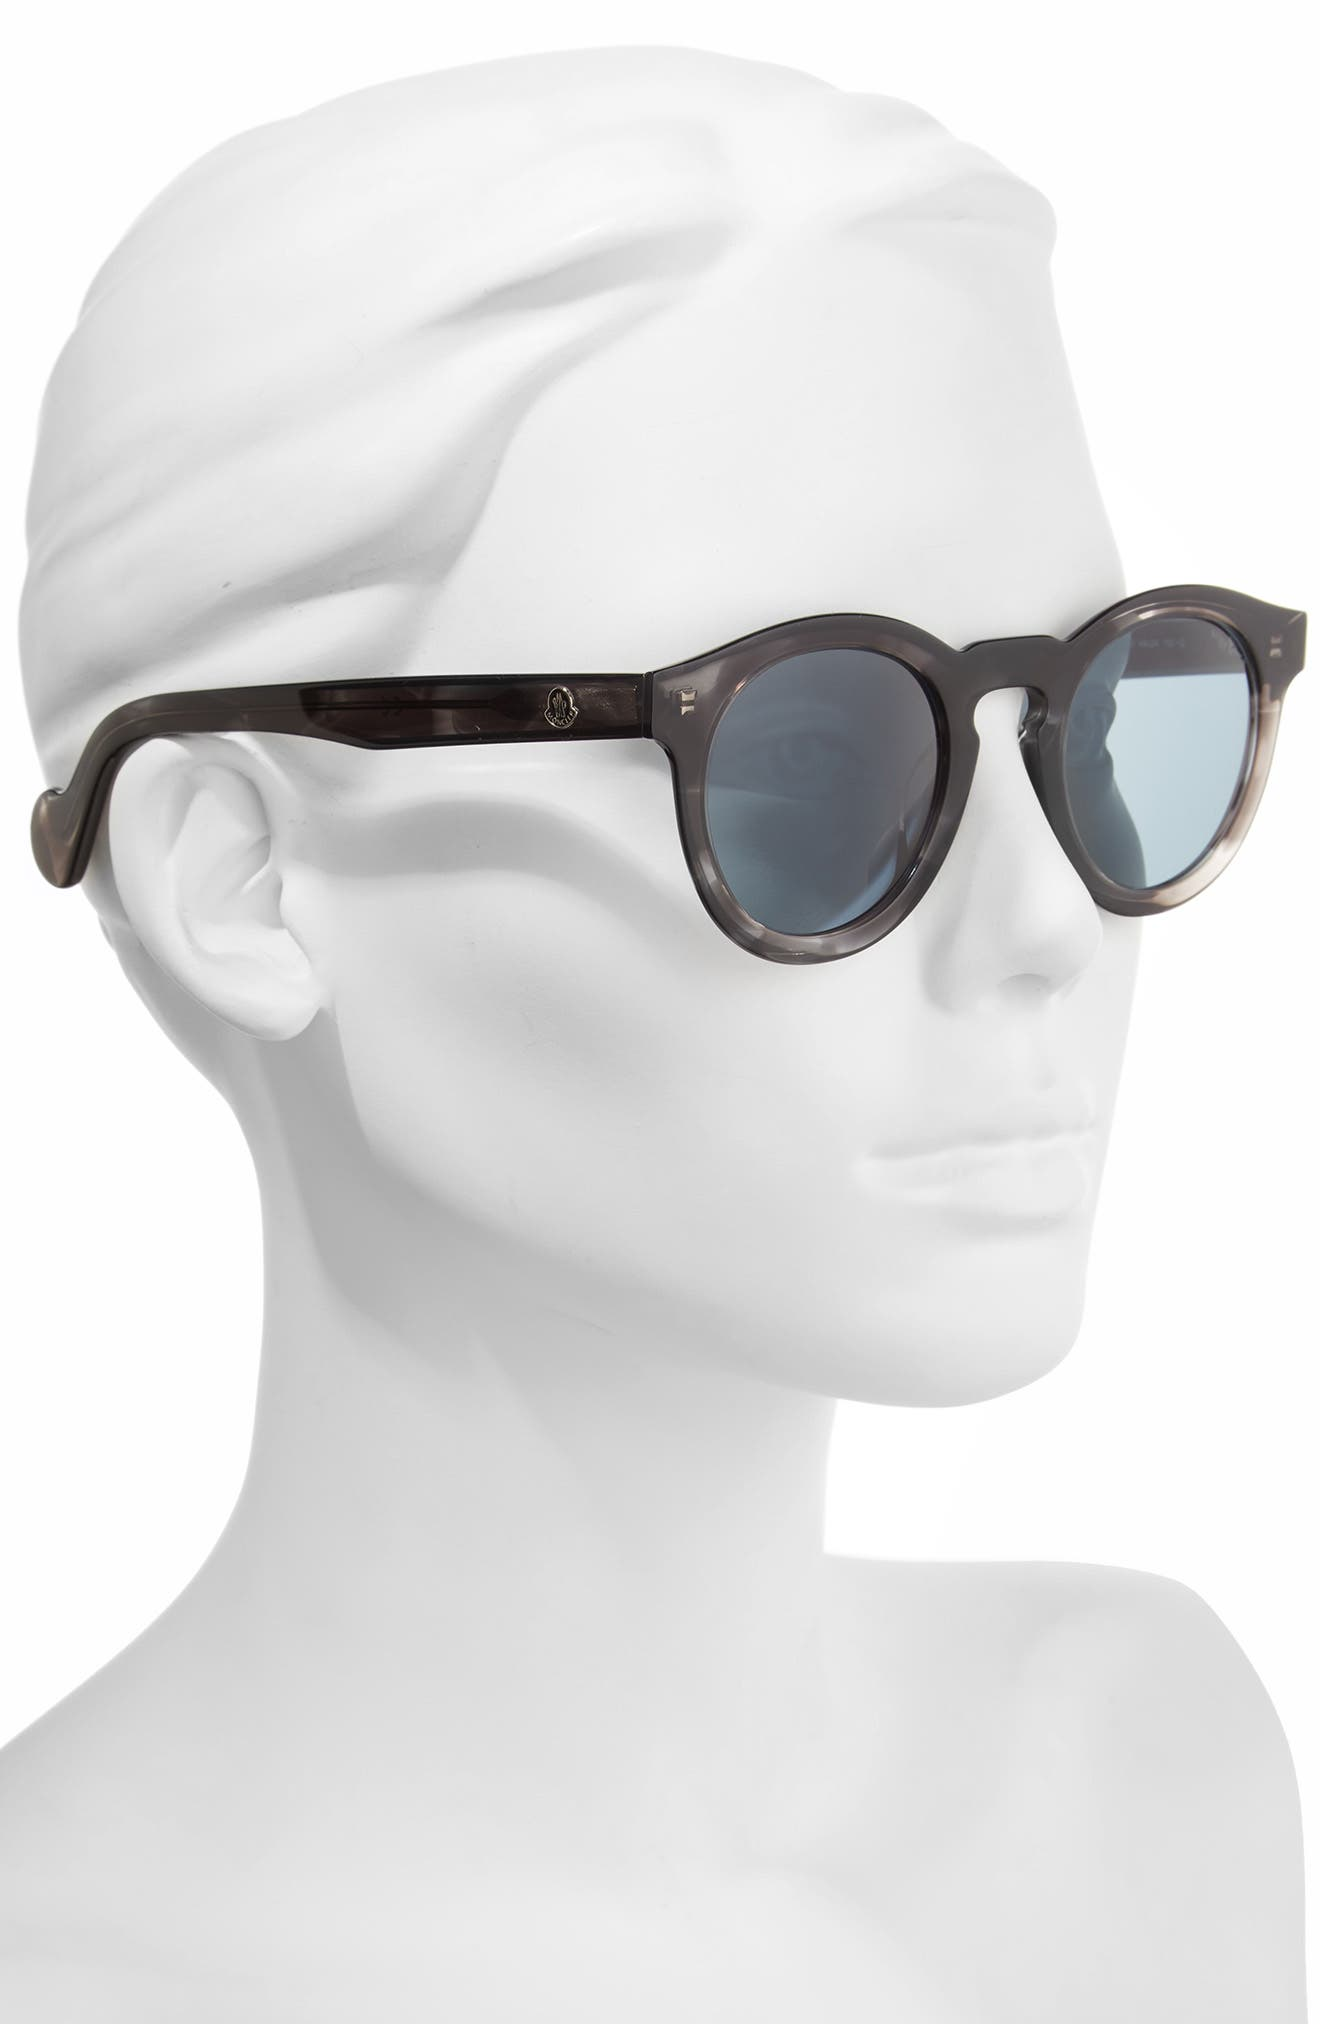 49mm Keyhole Sunglasses,                             Alternate thumbnail 2, color,                             Grey/ Other/ Blue